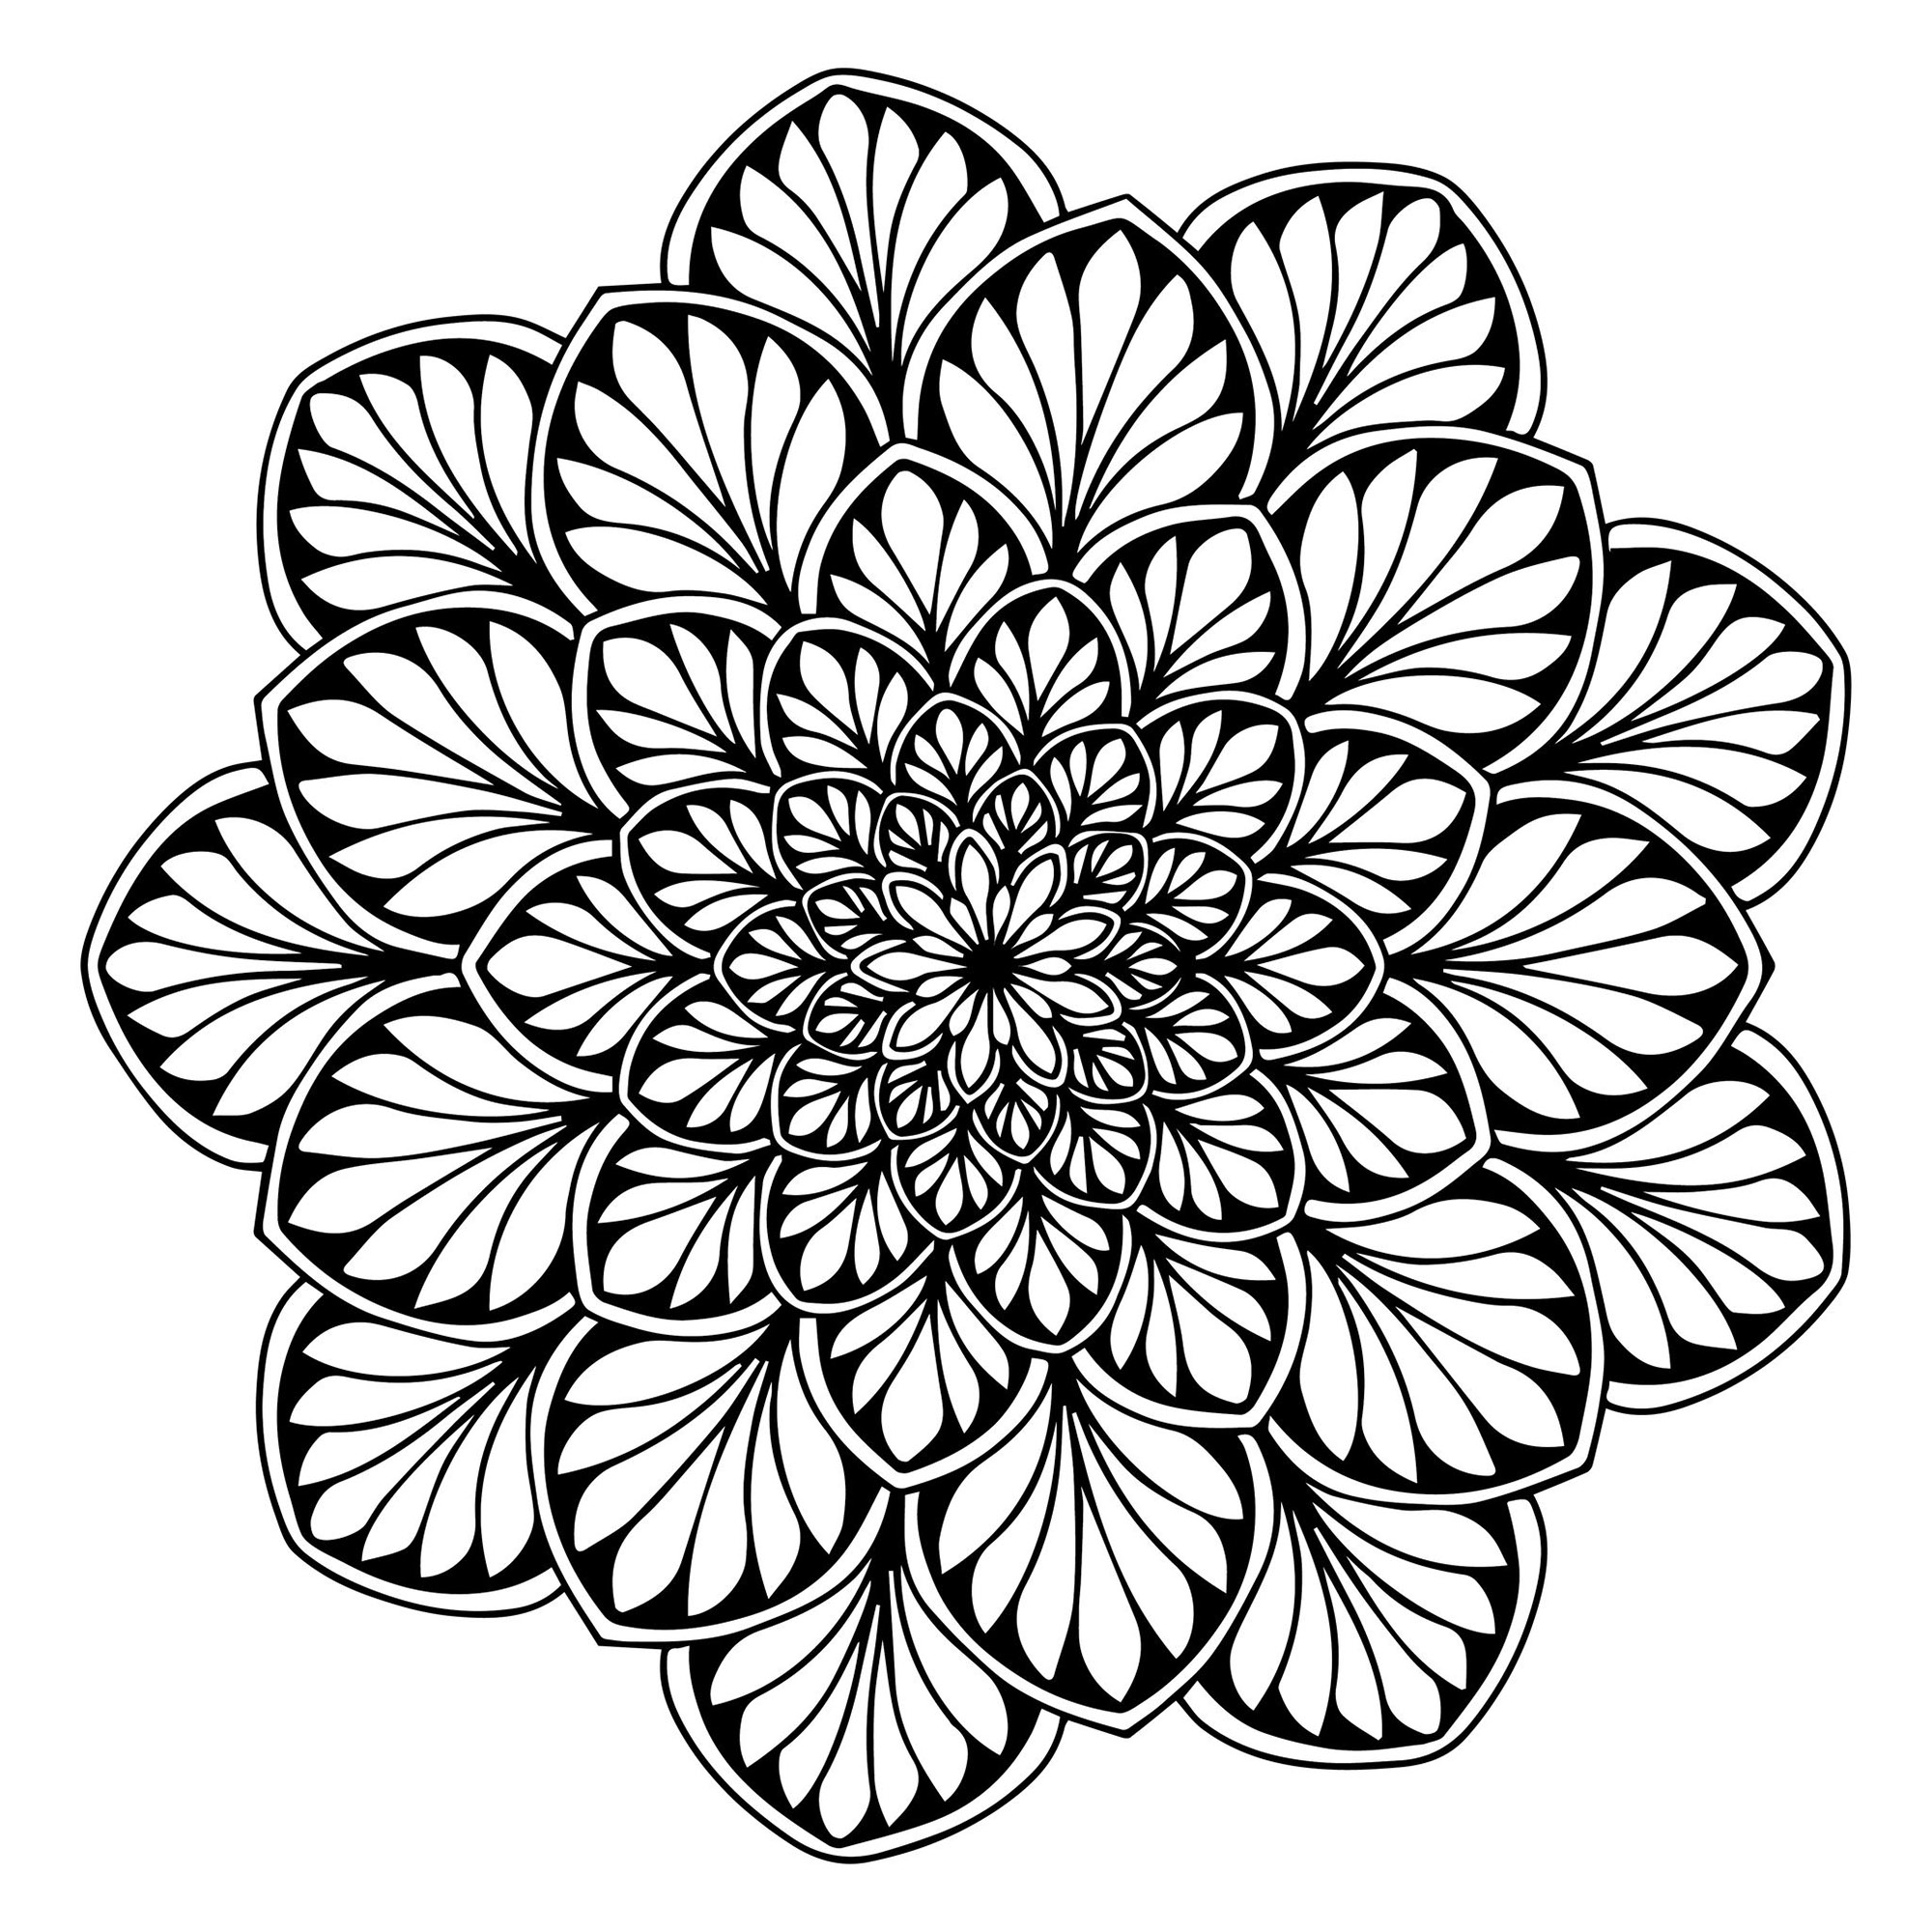 free printable mandalas for adults mandala coloring pages for adults printable at getdrawings free for adults mandalas printable